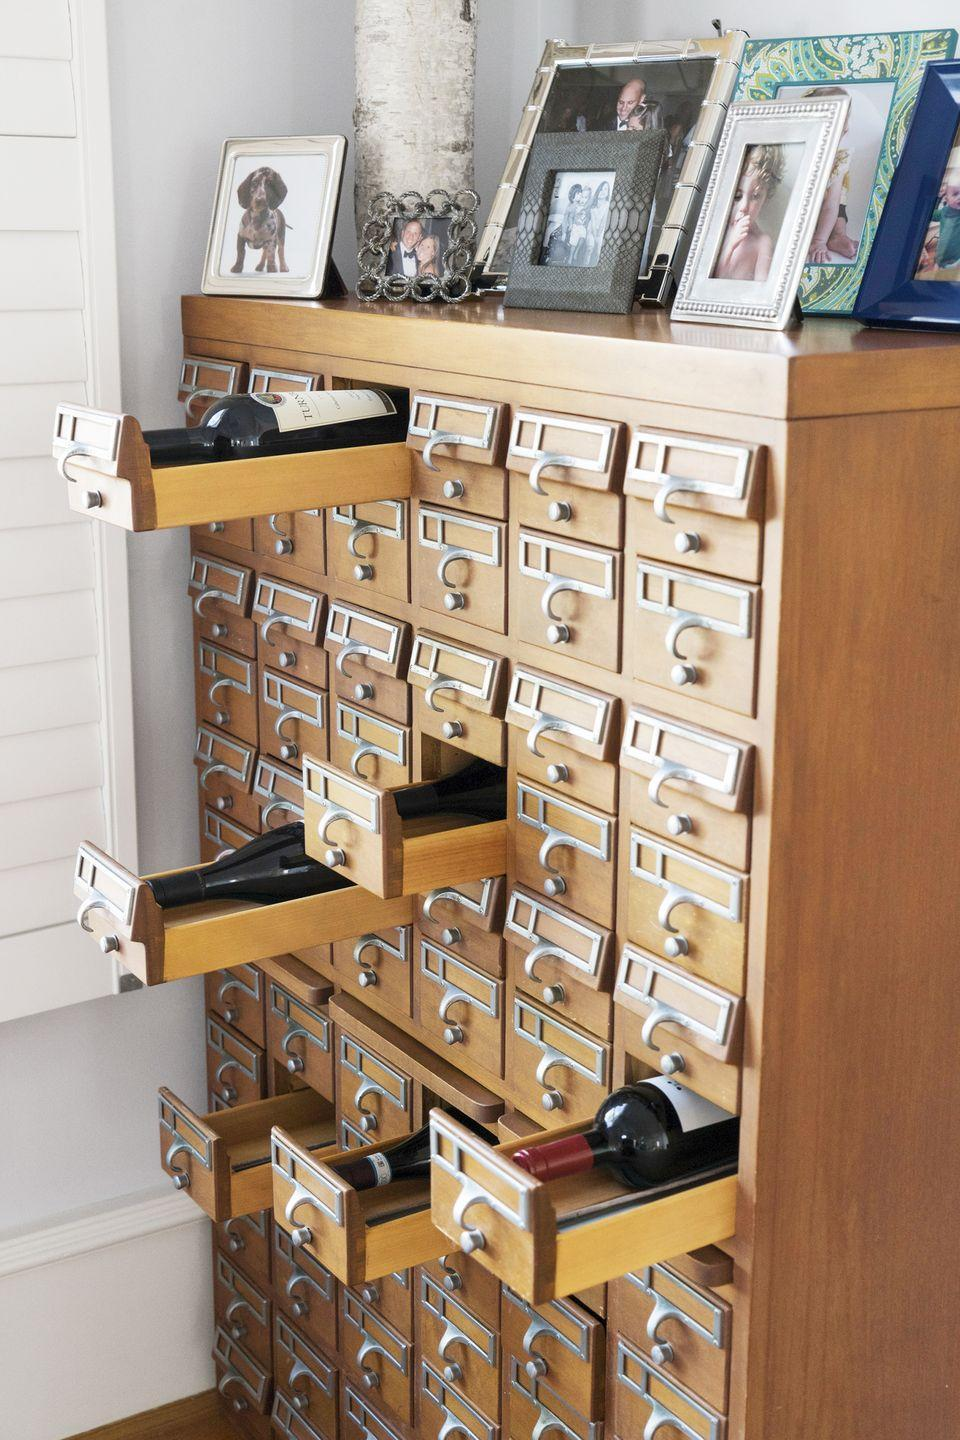 <p>A bottle of wine fits perfectly into a drawer of an old card catalog. Drawers without wine offer a perfect spot to stash birthday and other holiday cards.</p>